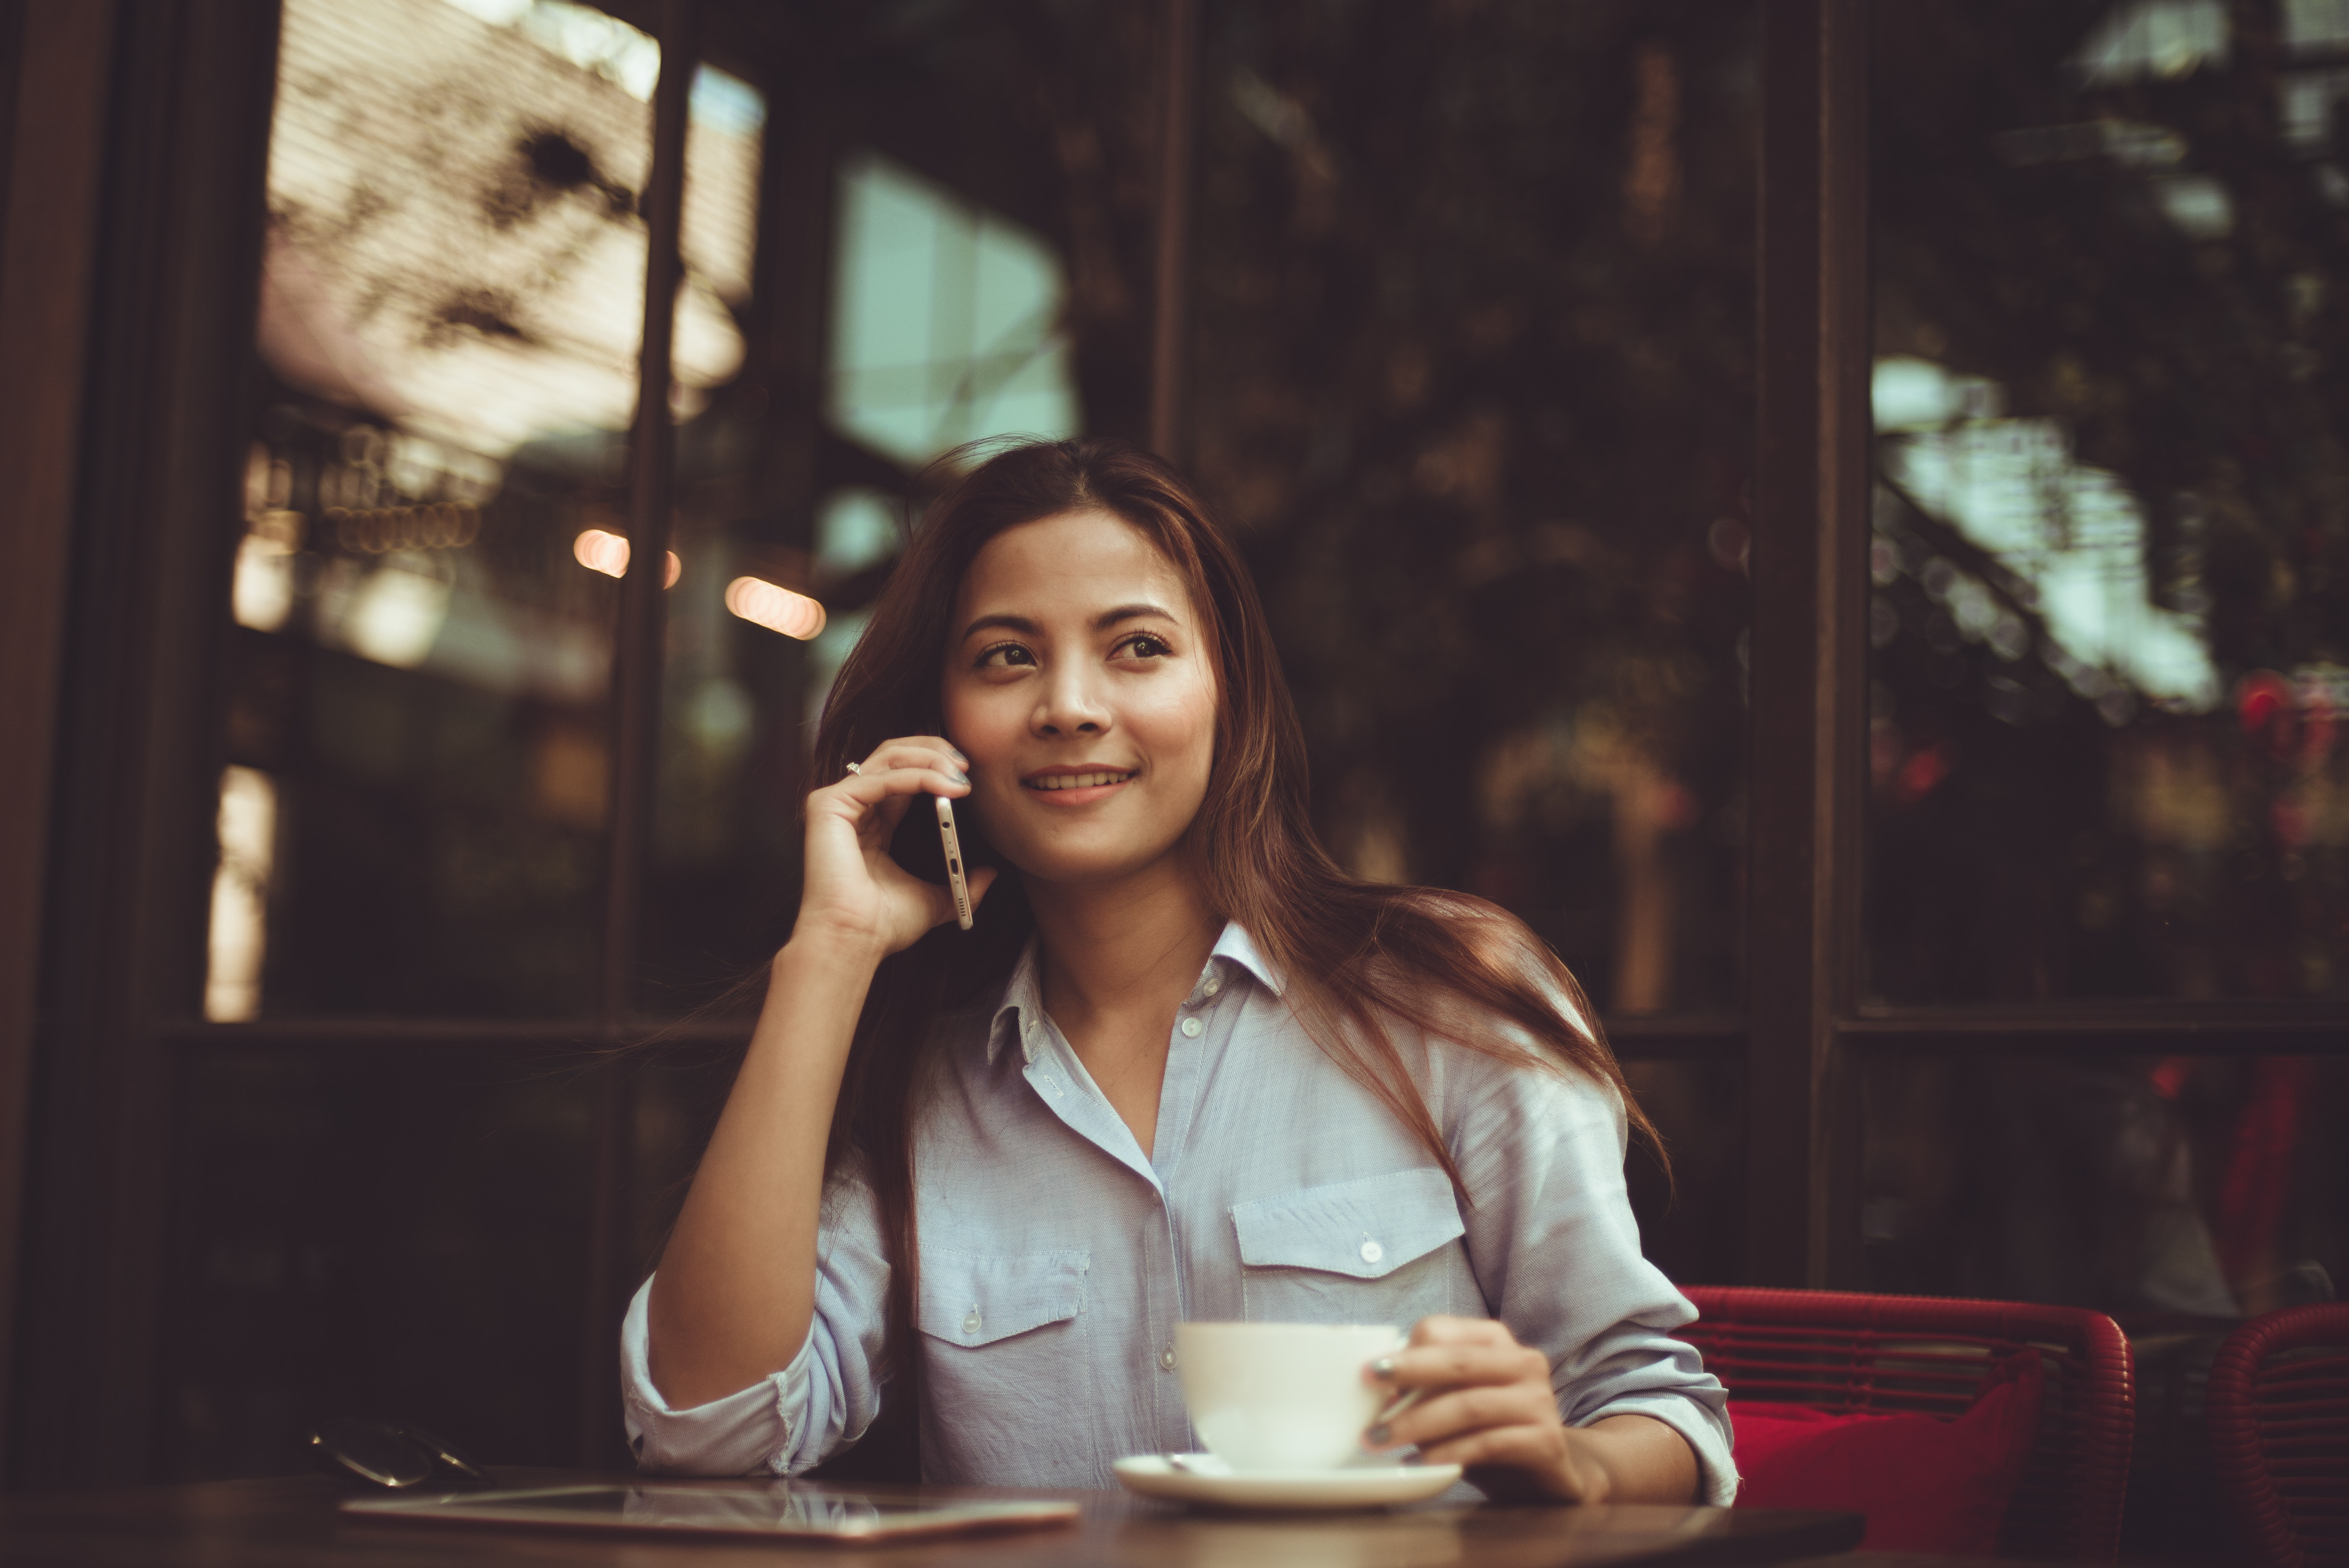 Portrait of young woman using mobile phone in cafe photo